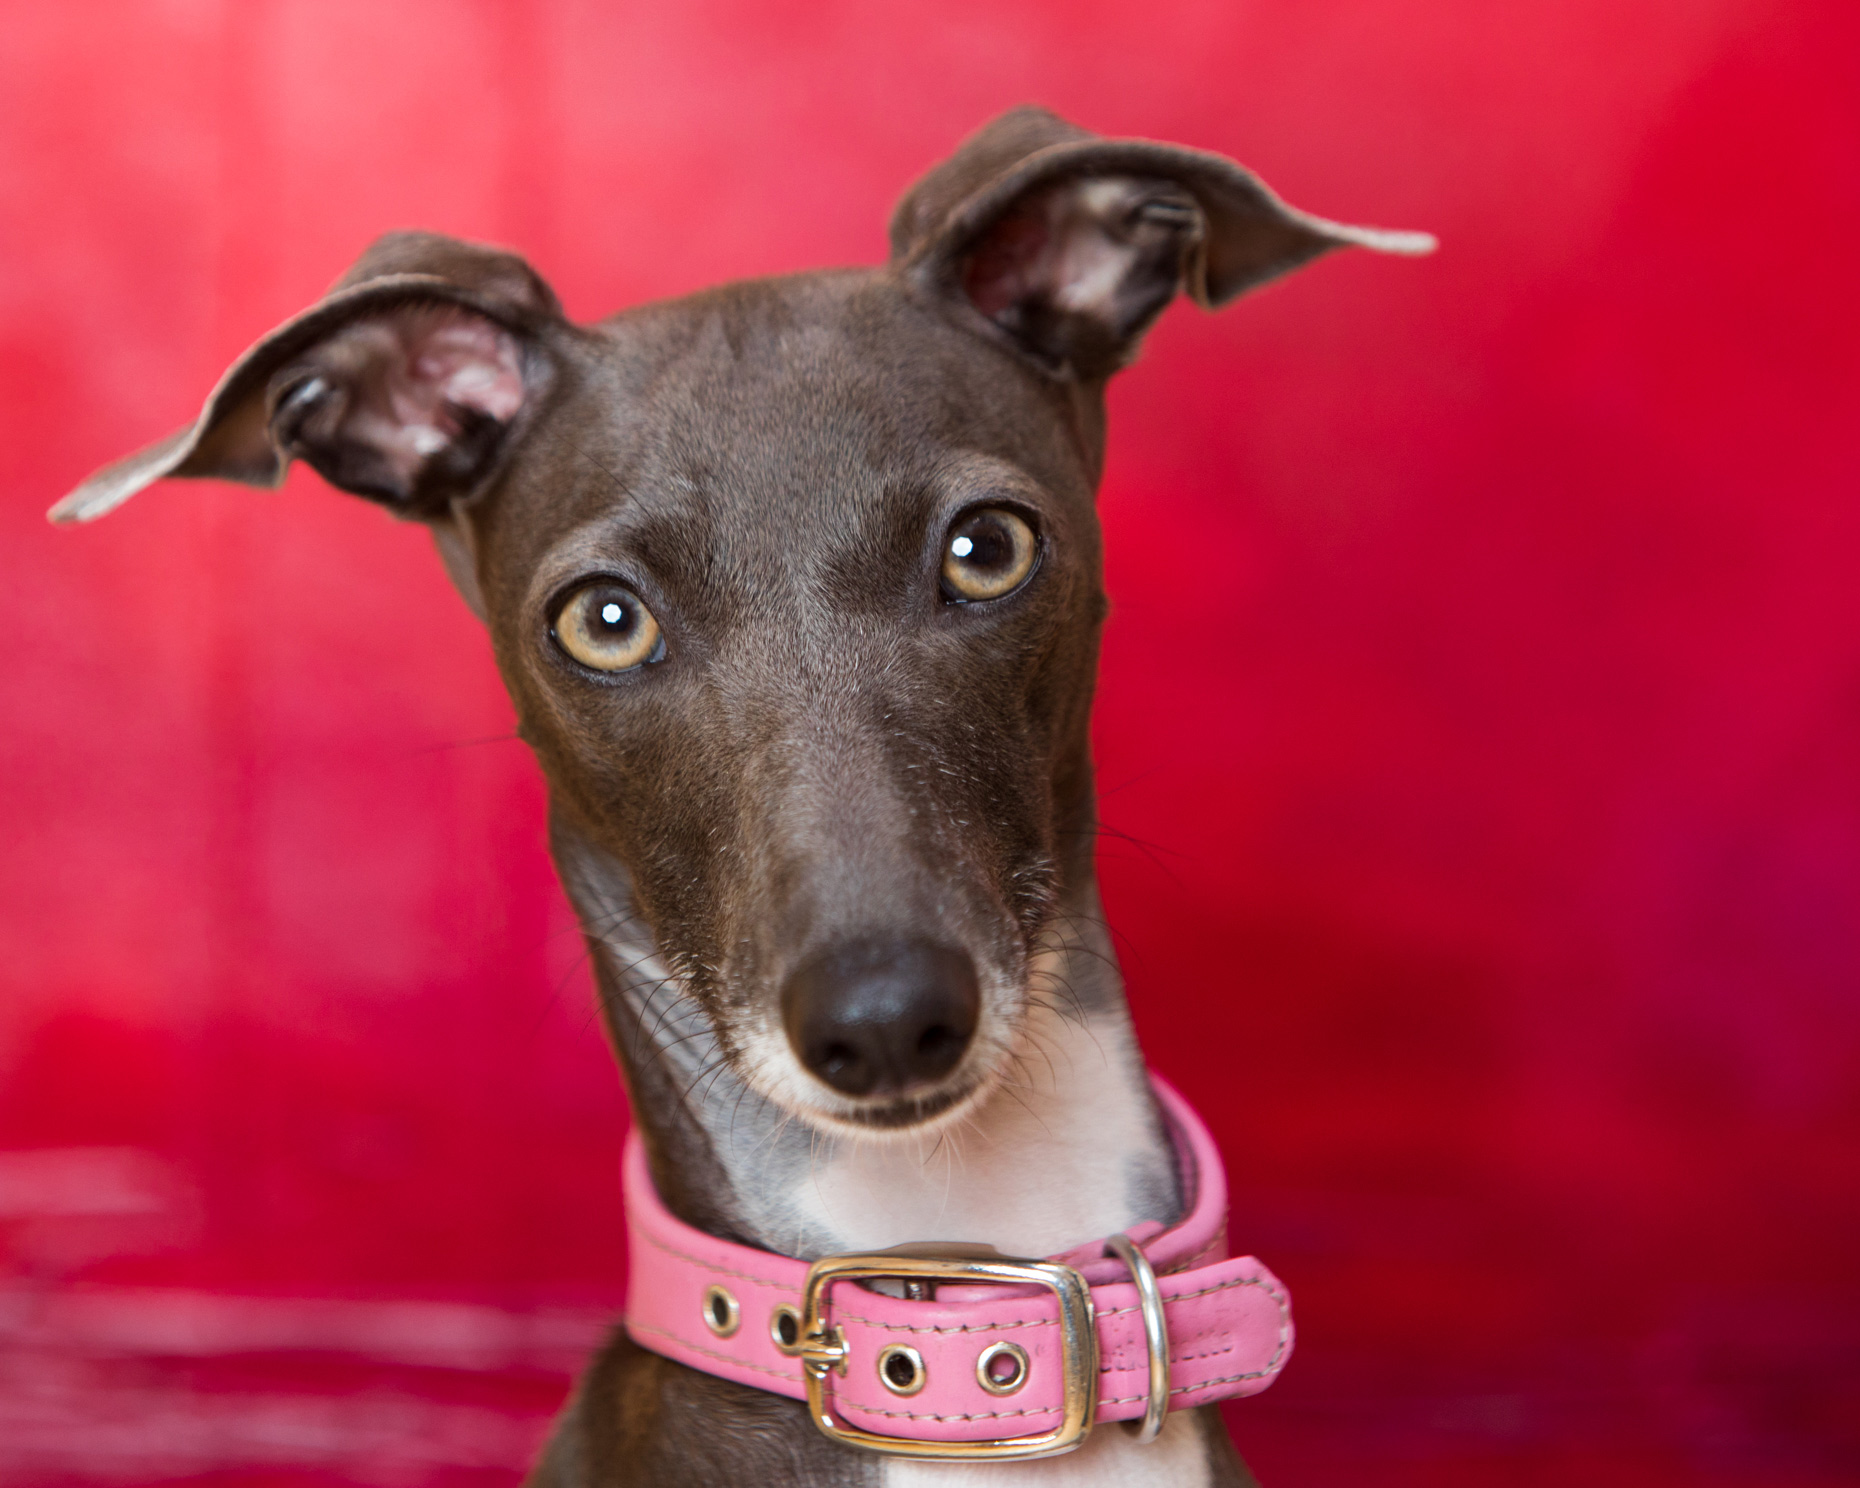 Dog Studio Photography | Greyhound Portrait on Red by Mark Rogers